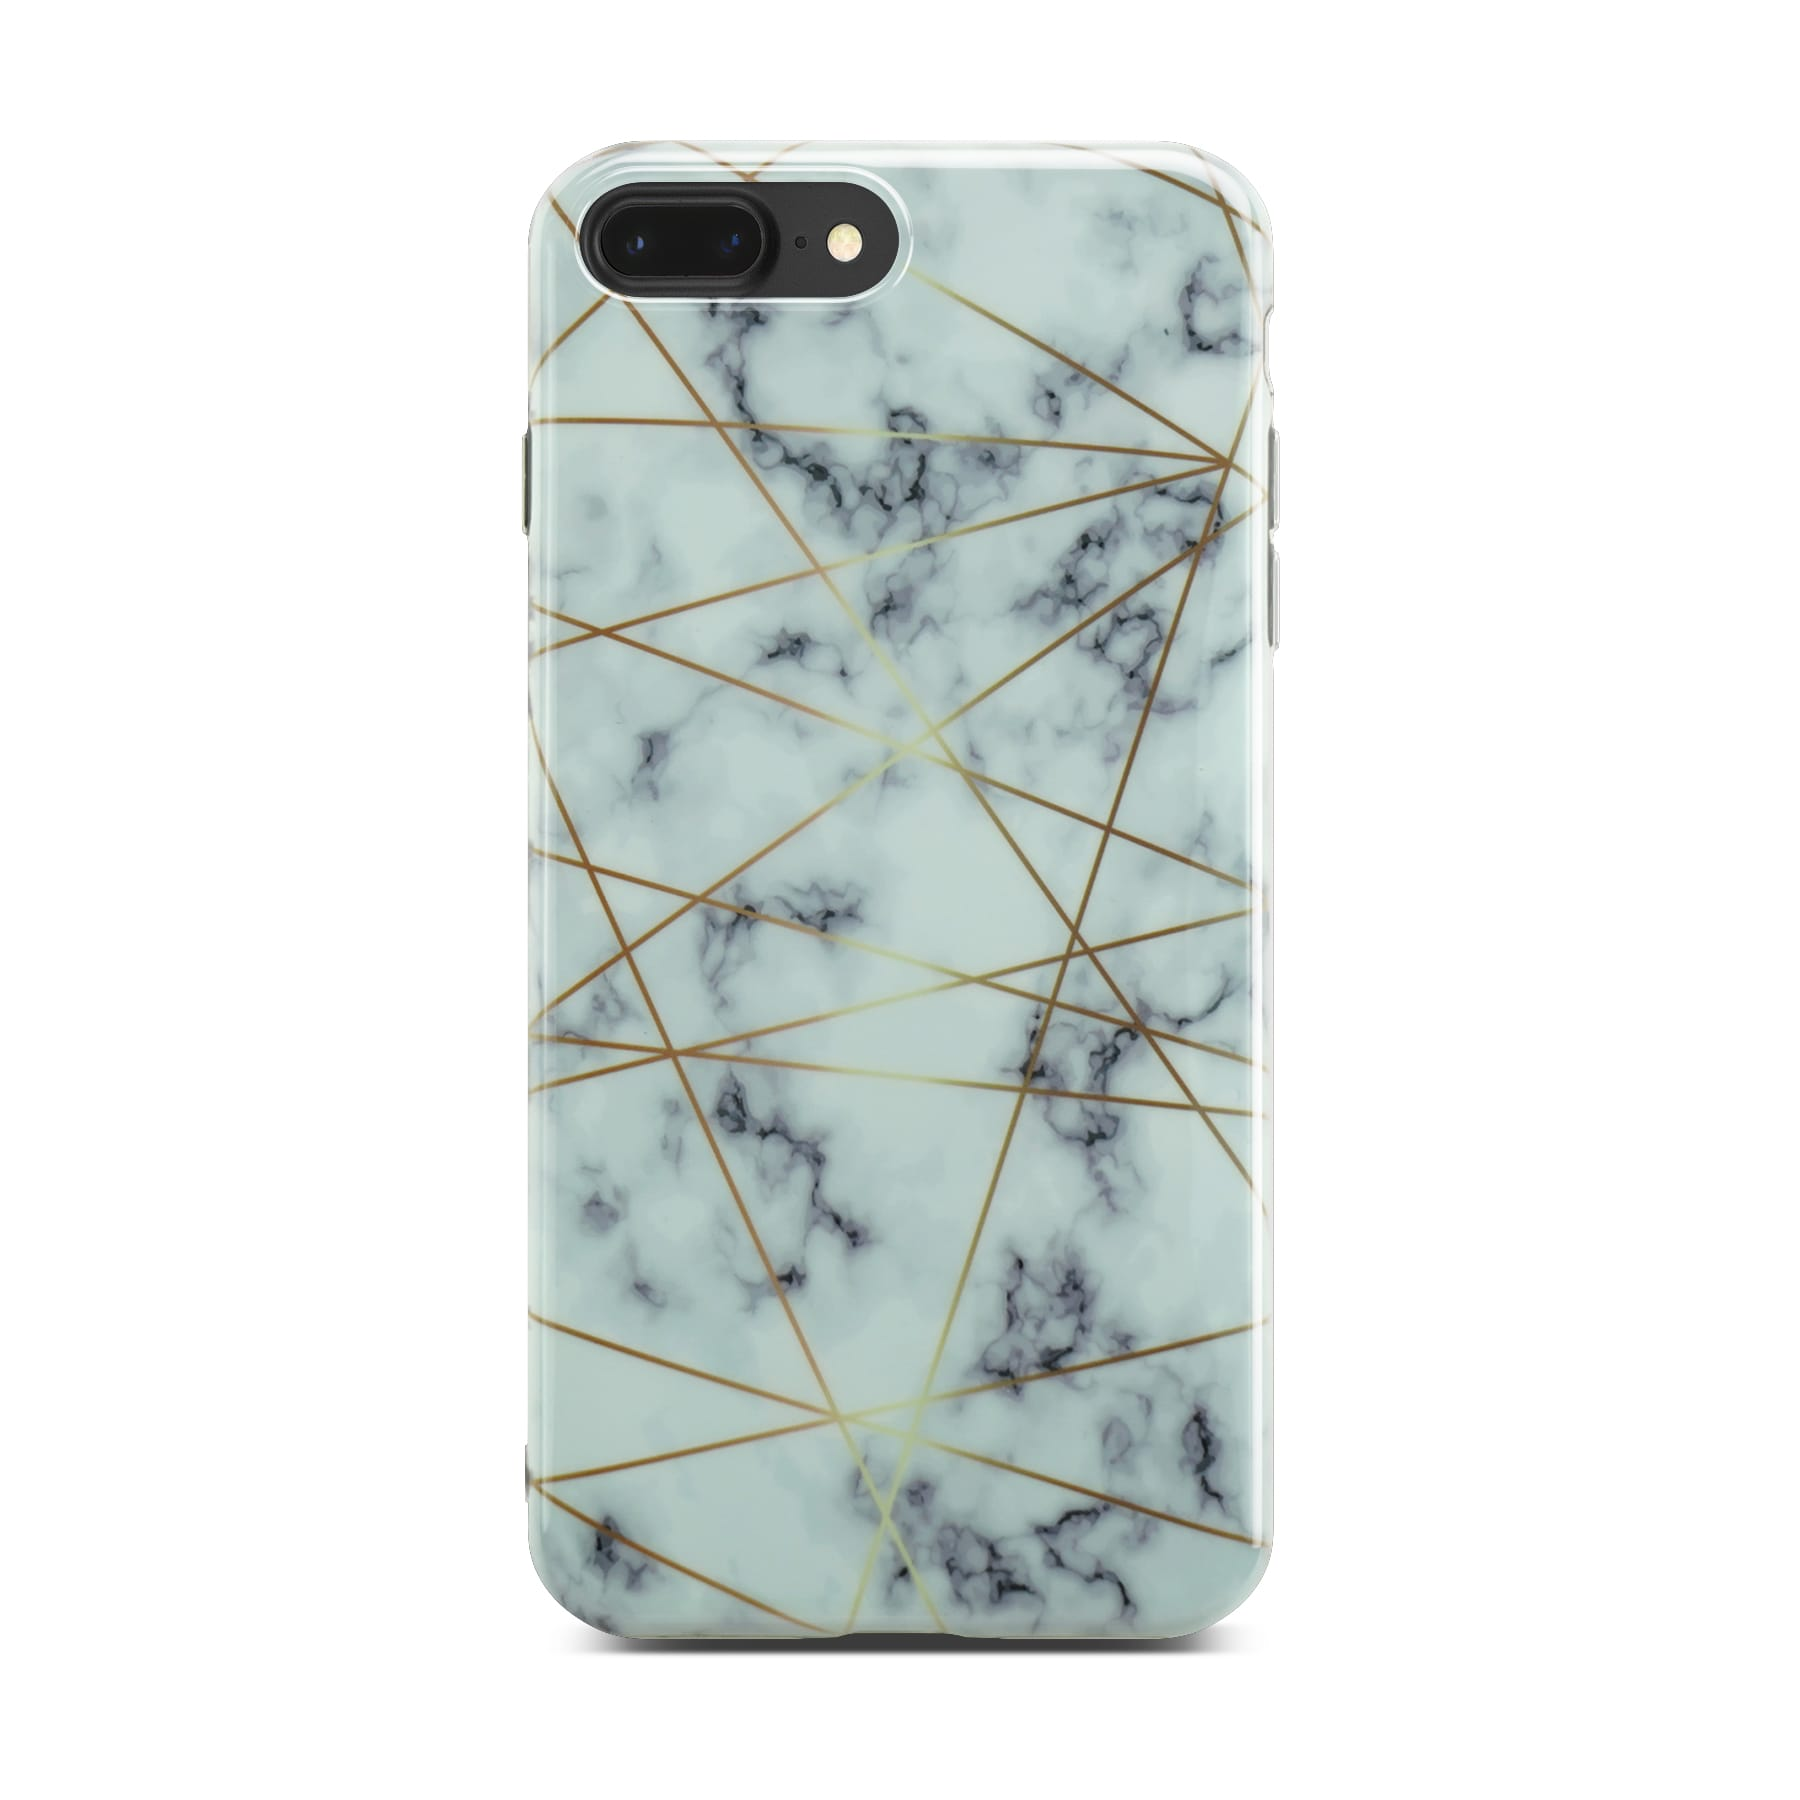 White Glossy Marble Case with Golden Lines On Space Gray iPhone 8 Plus